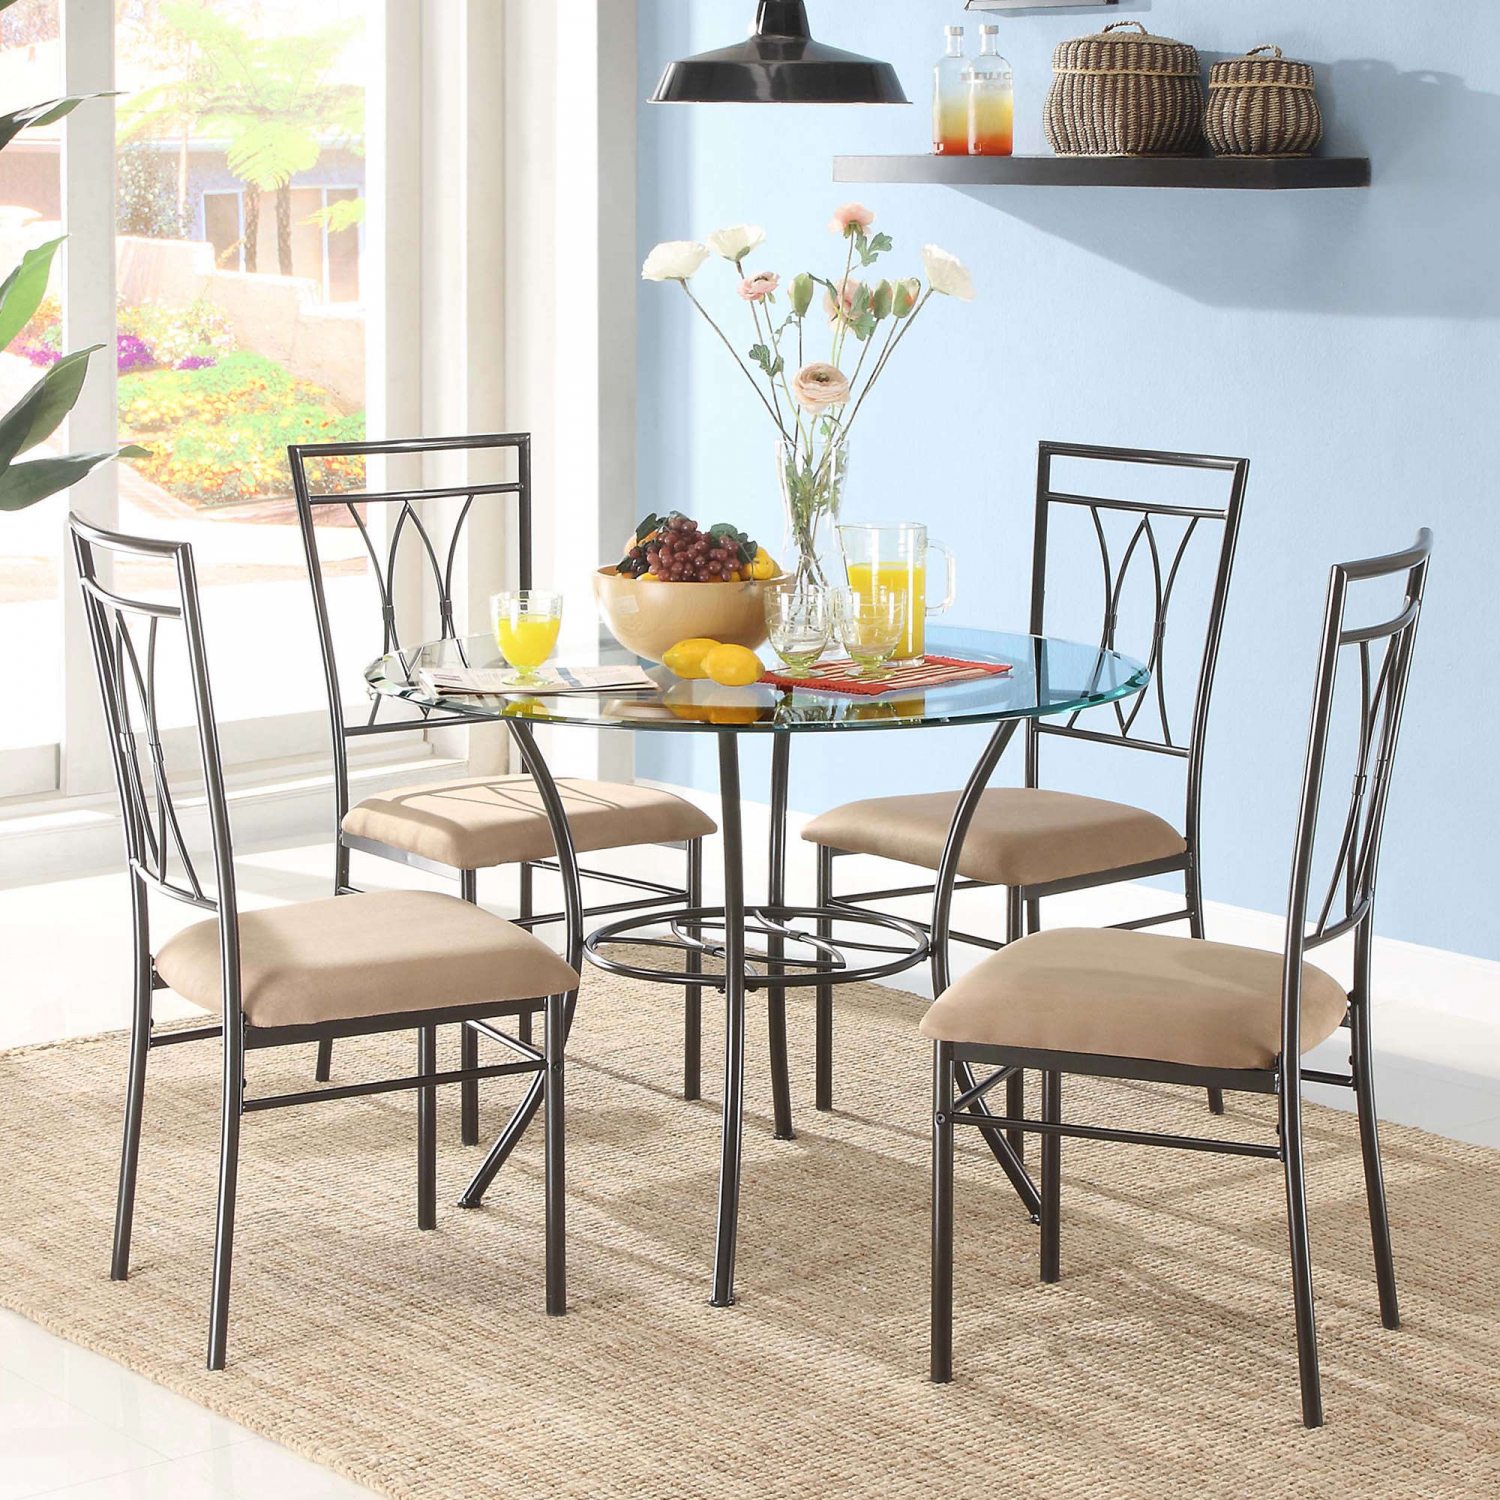 Gl And Metal Dining Set 5 Piece 42 Inch Round Tabletop Elegant Design New